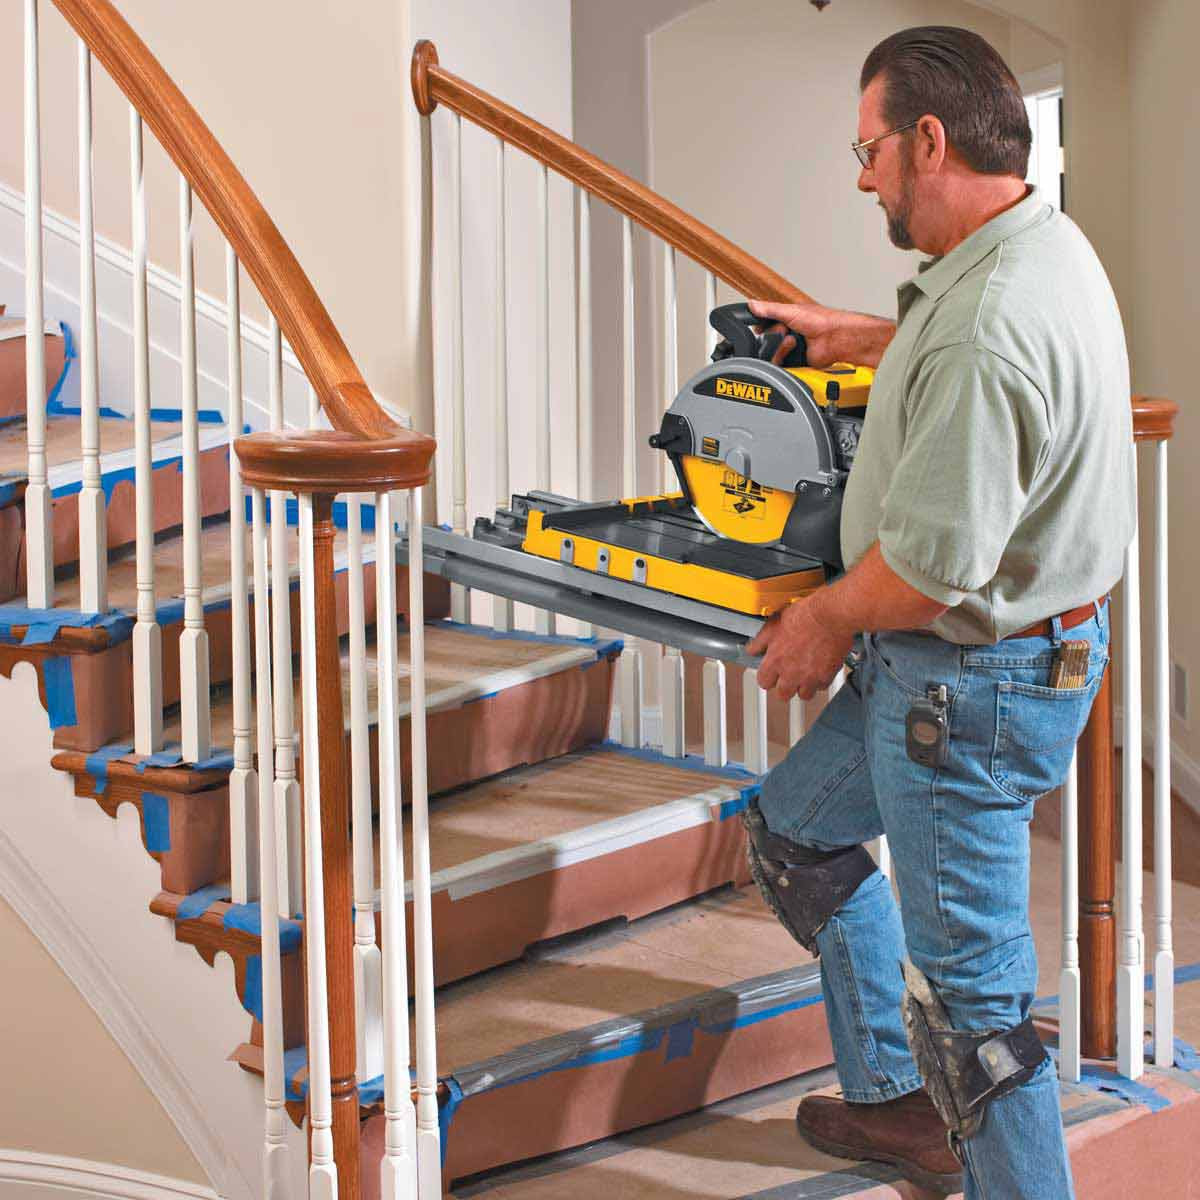 dewalt tile saw easy transport